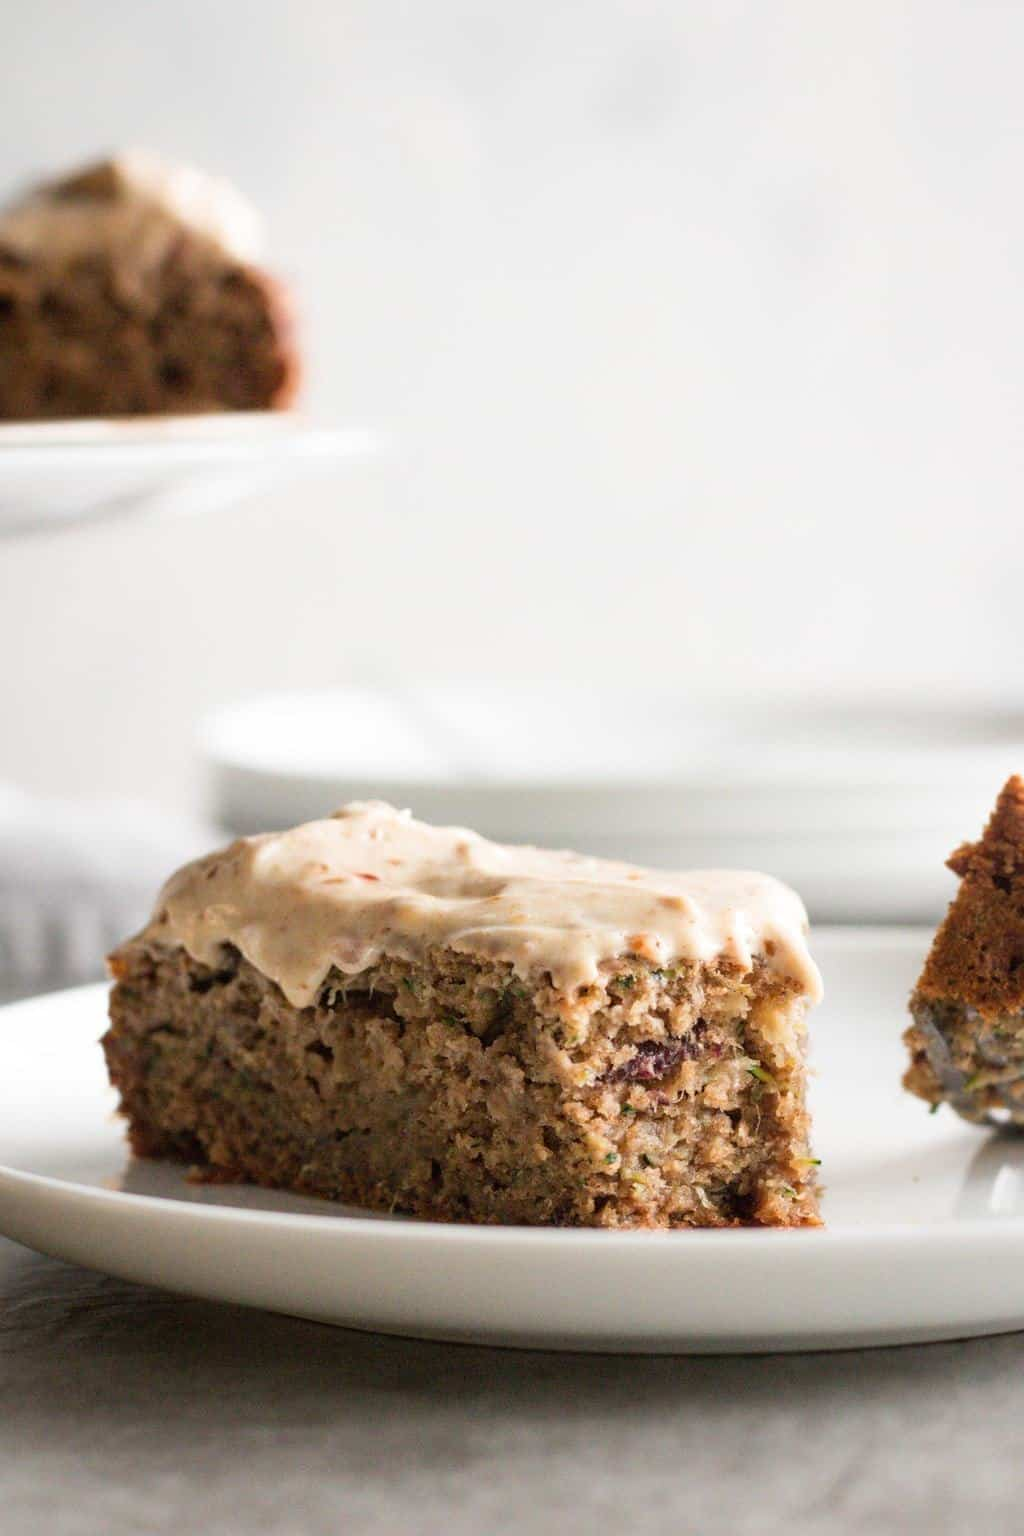 Whole Wheat Apple Zucchini Cake with Cream Cheese Frosting